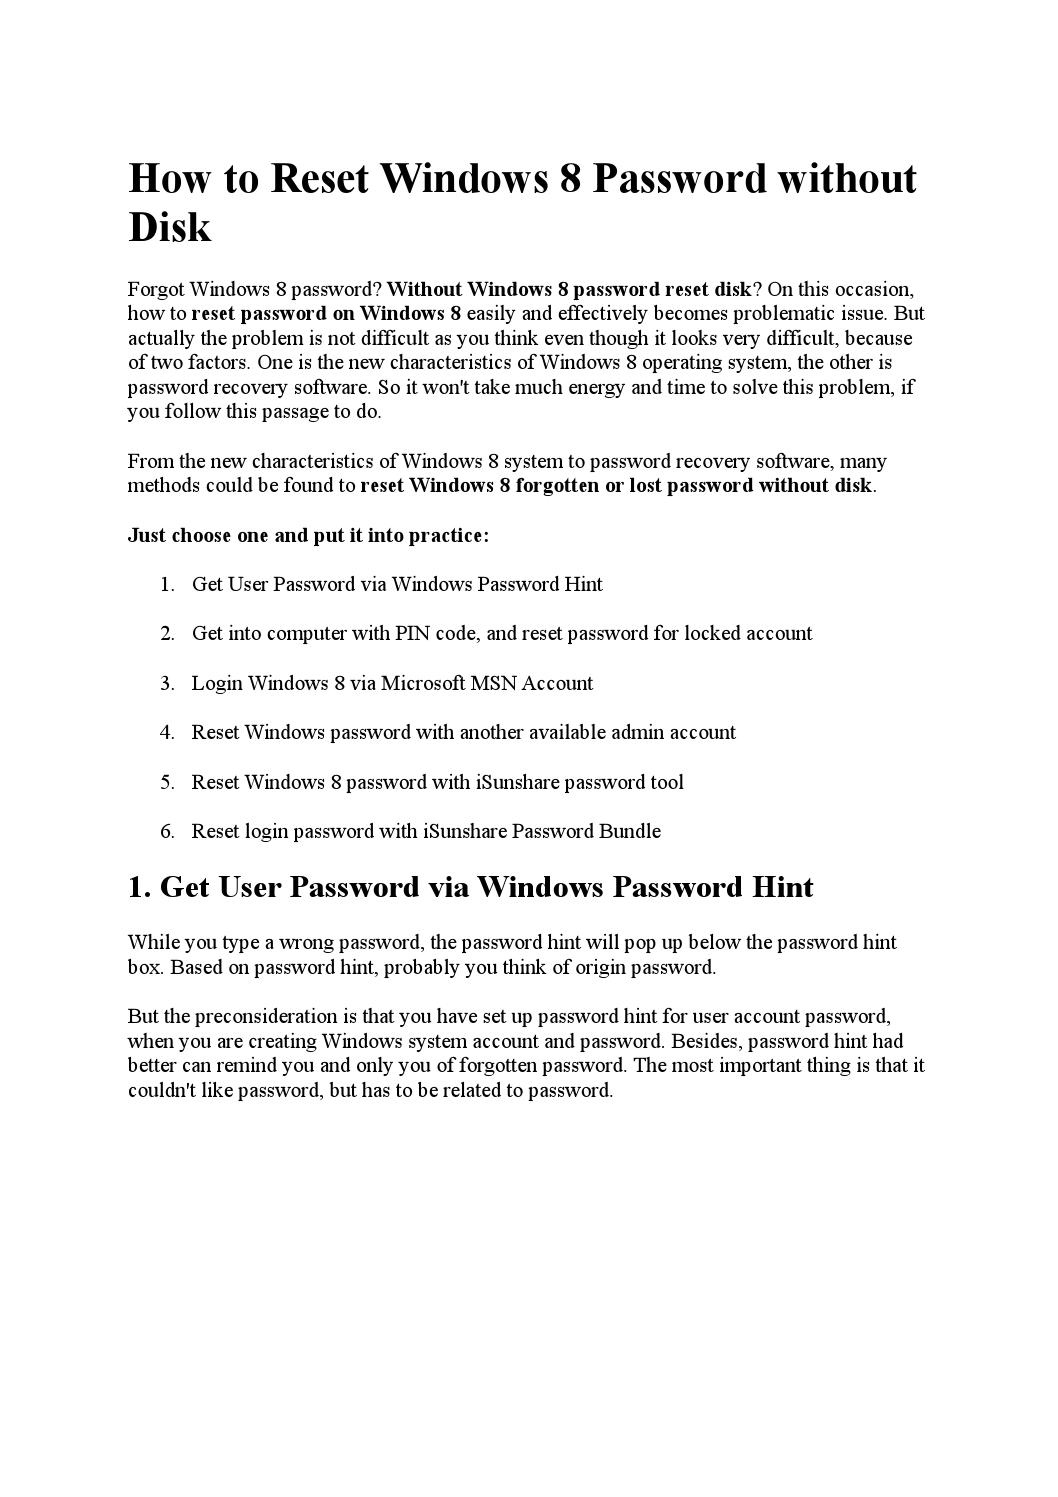 How to reset windows 8 password without disk